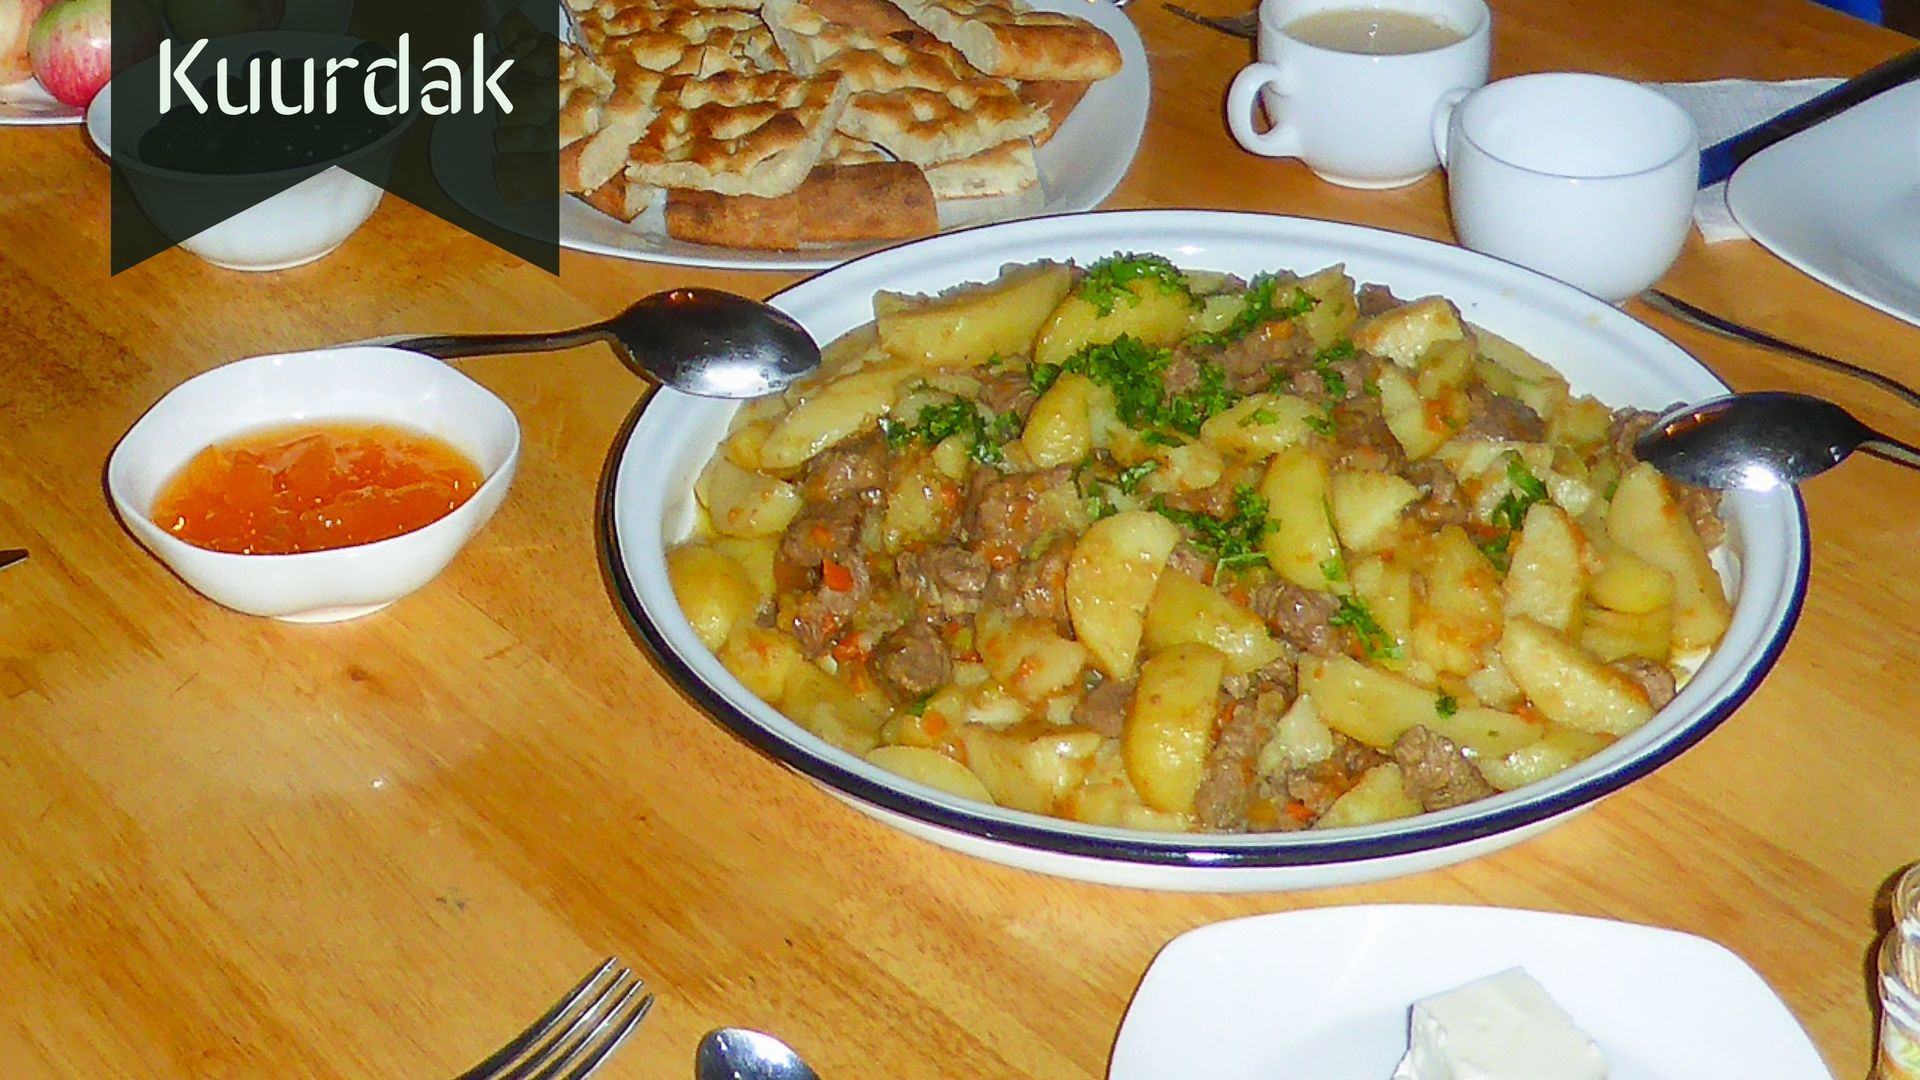 Kuurdak-Central Asian Dish